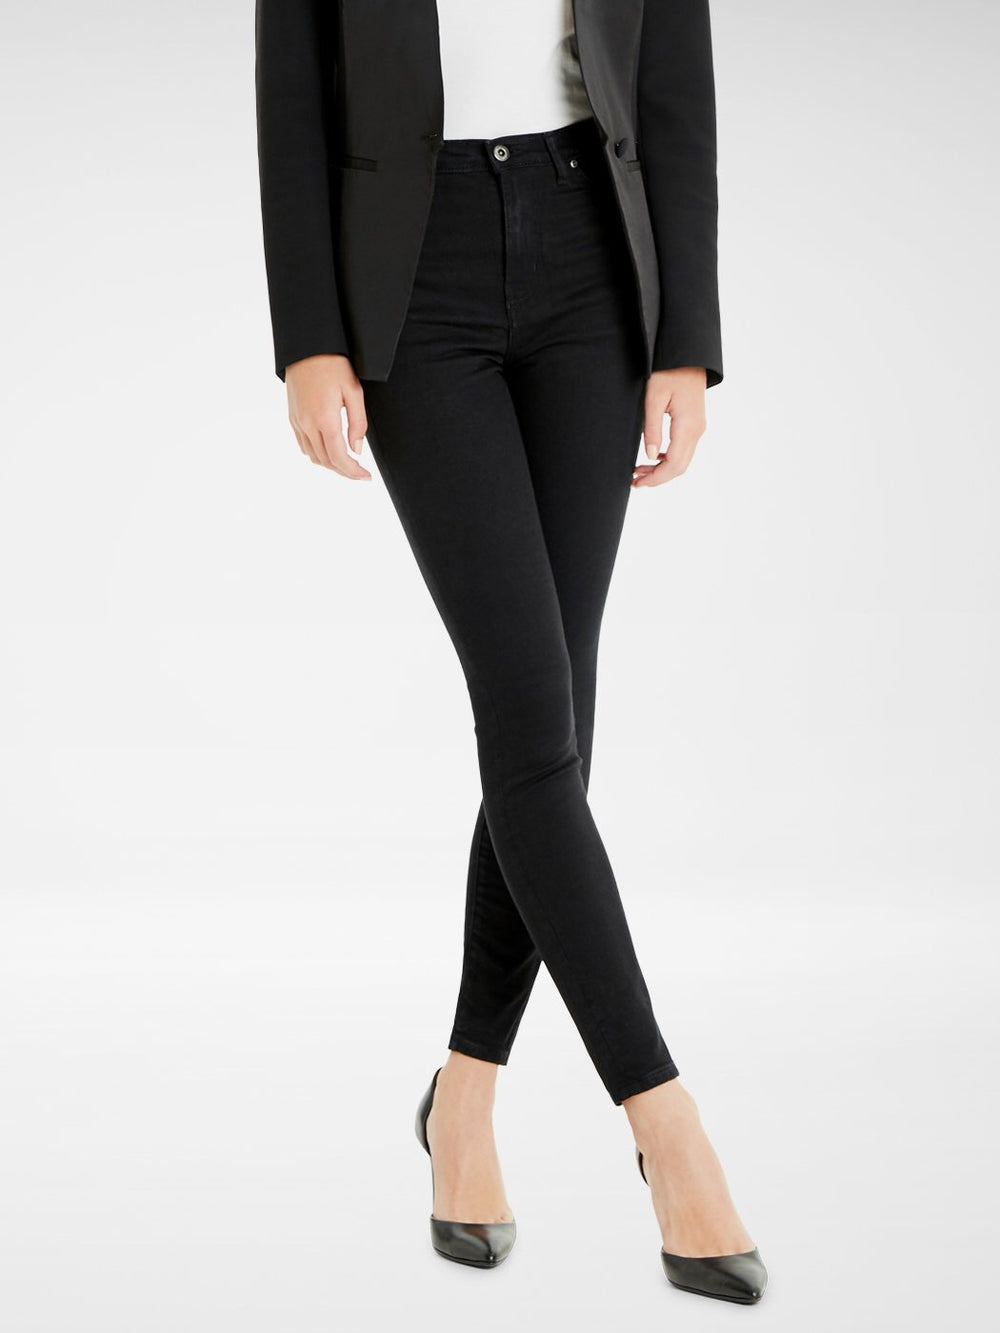 Front view of the Outland Denim Harriet Jean in Black Ankle Length